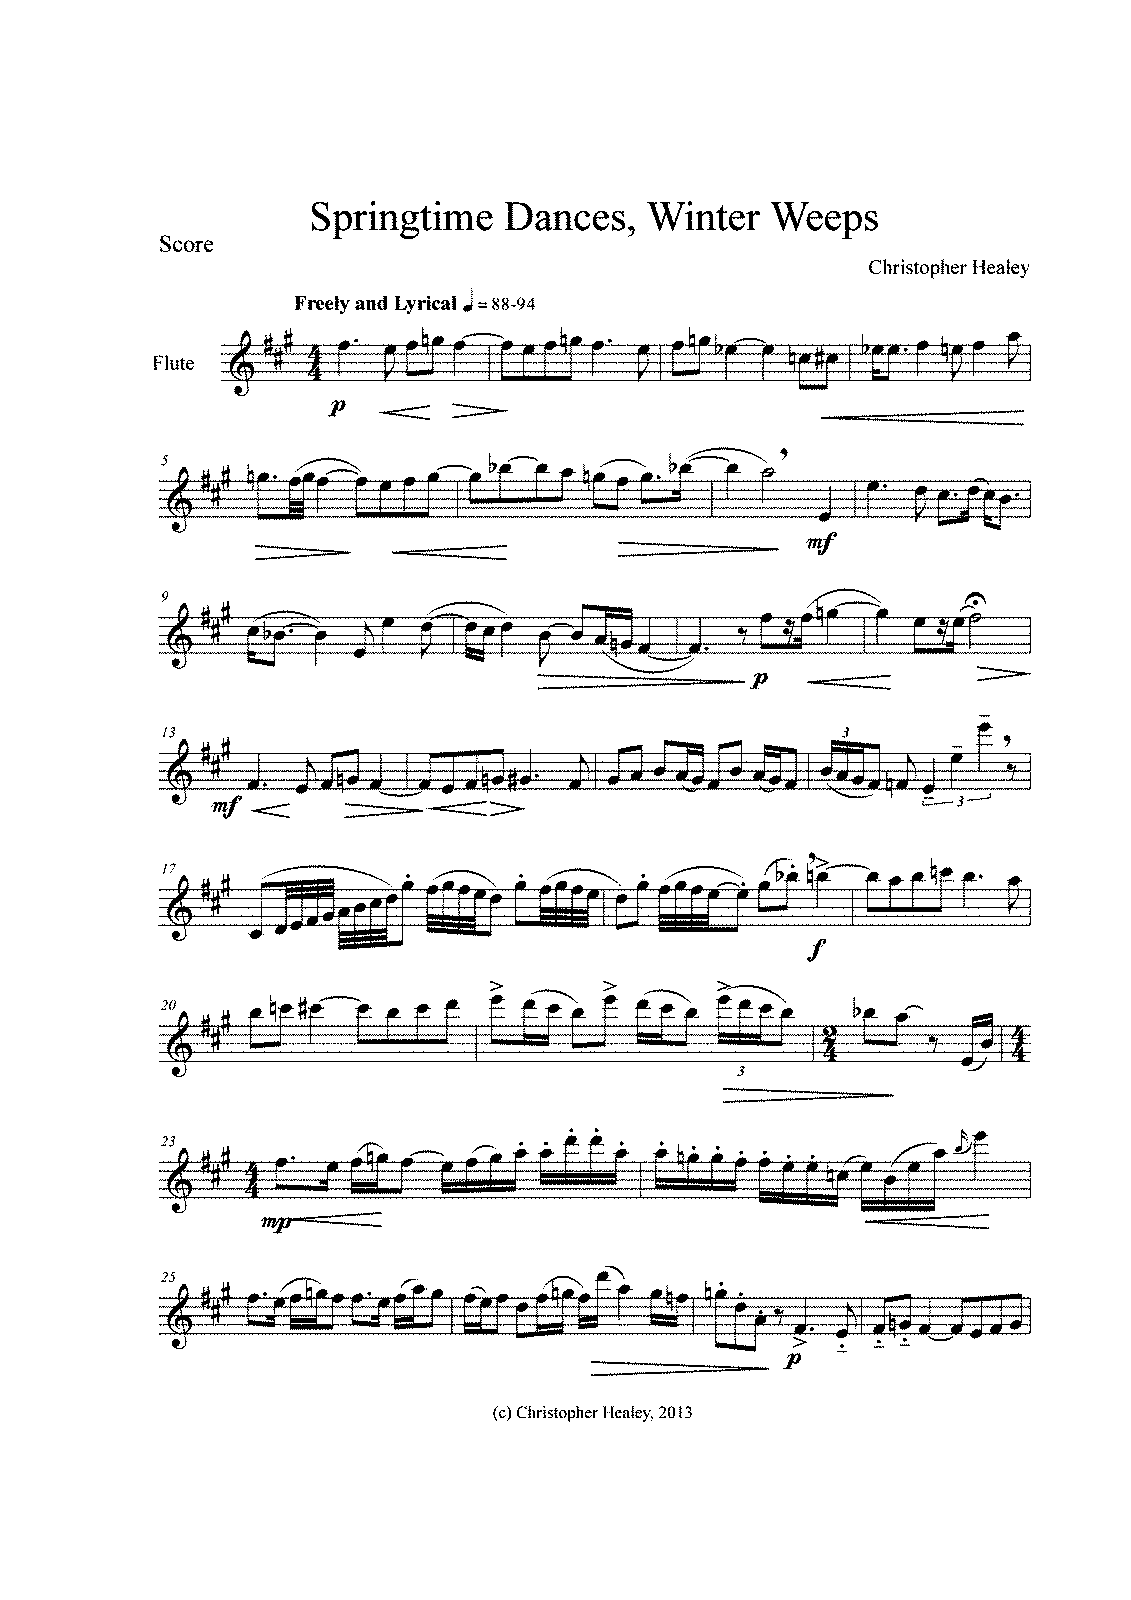 PMLP491414-Brijette Flute Piece Final - Springtime Dances Winter Weeps.pdf